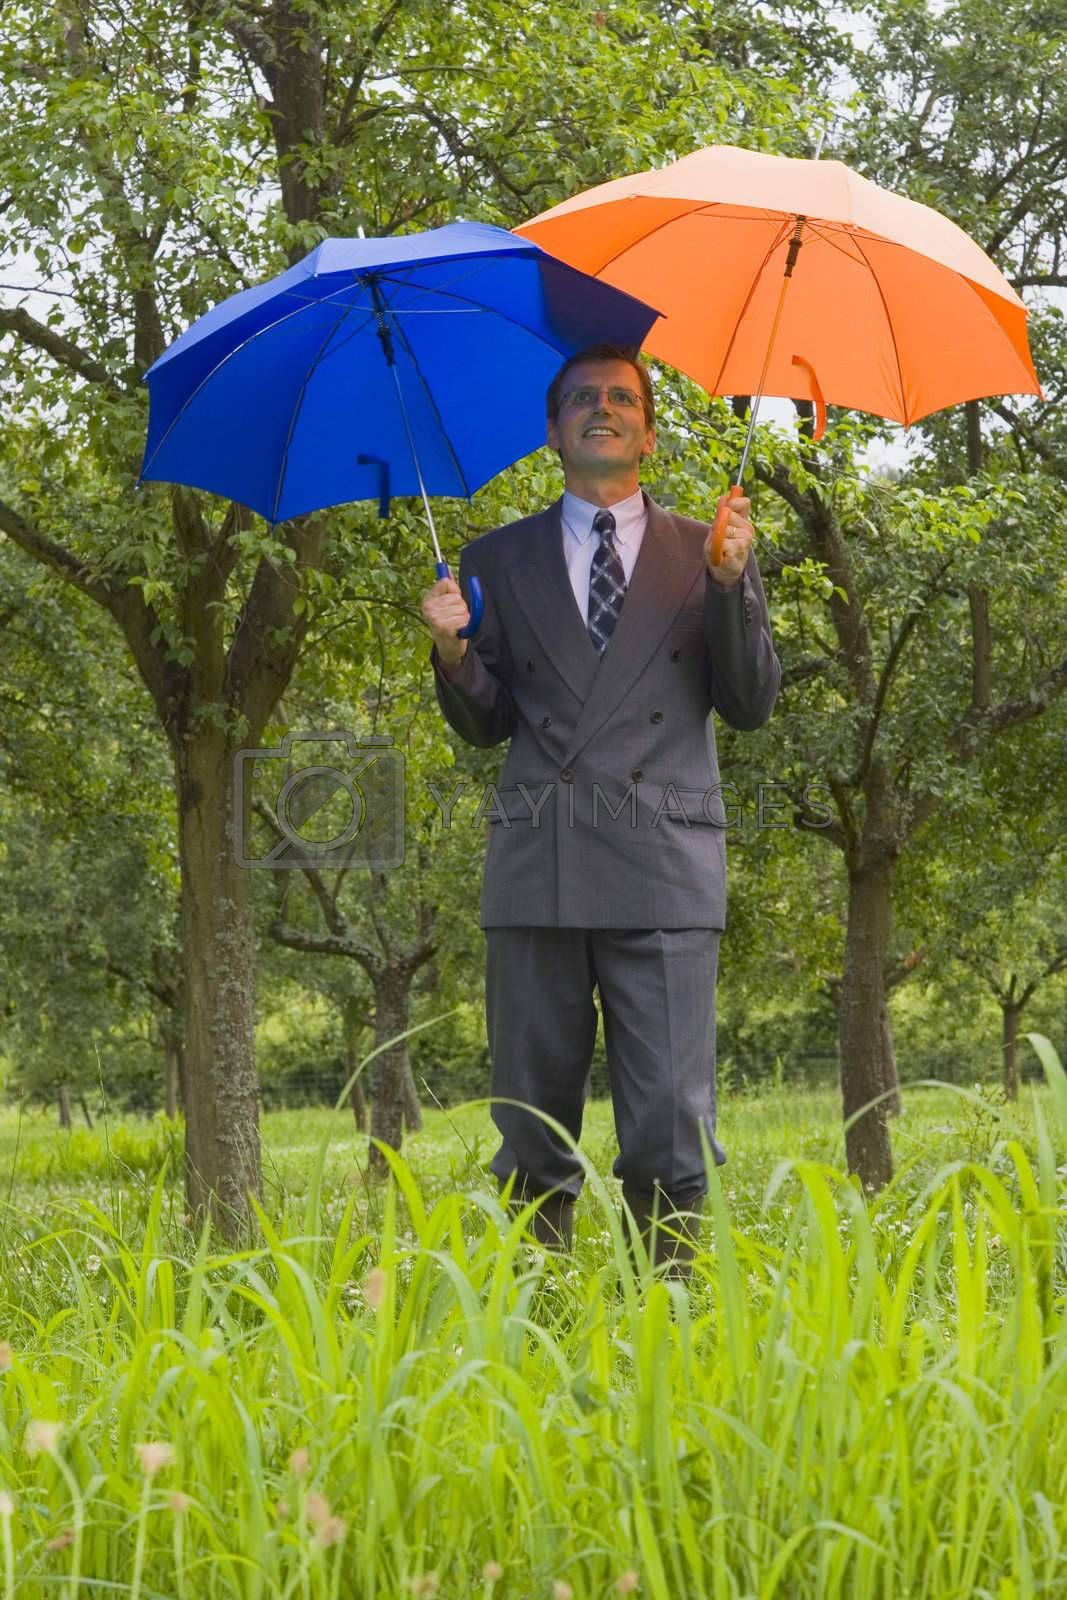 Royalty free image of Businessman with blue and orange umbrellas by ArtmannWitte